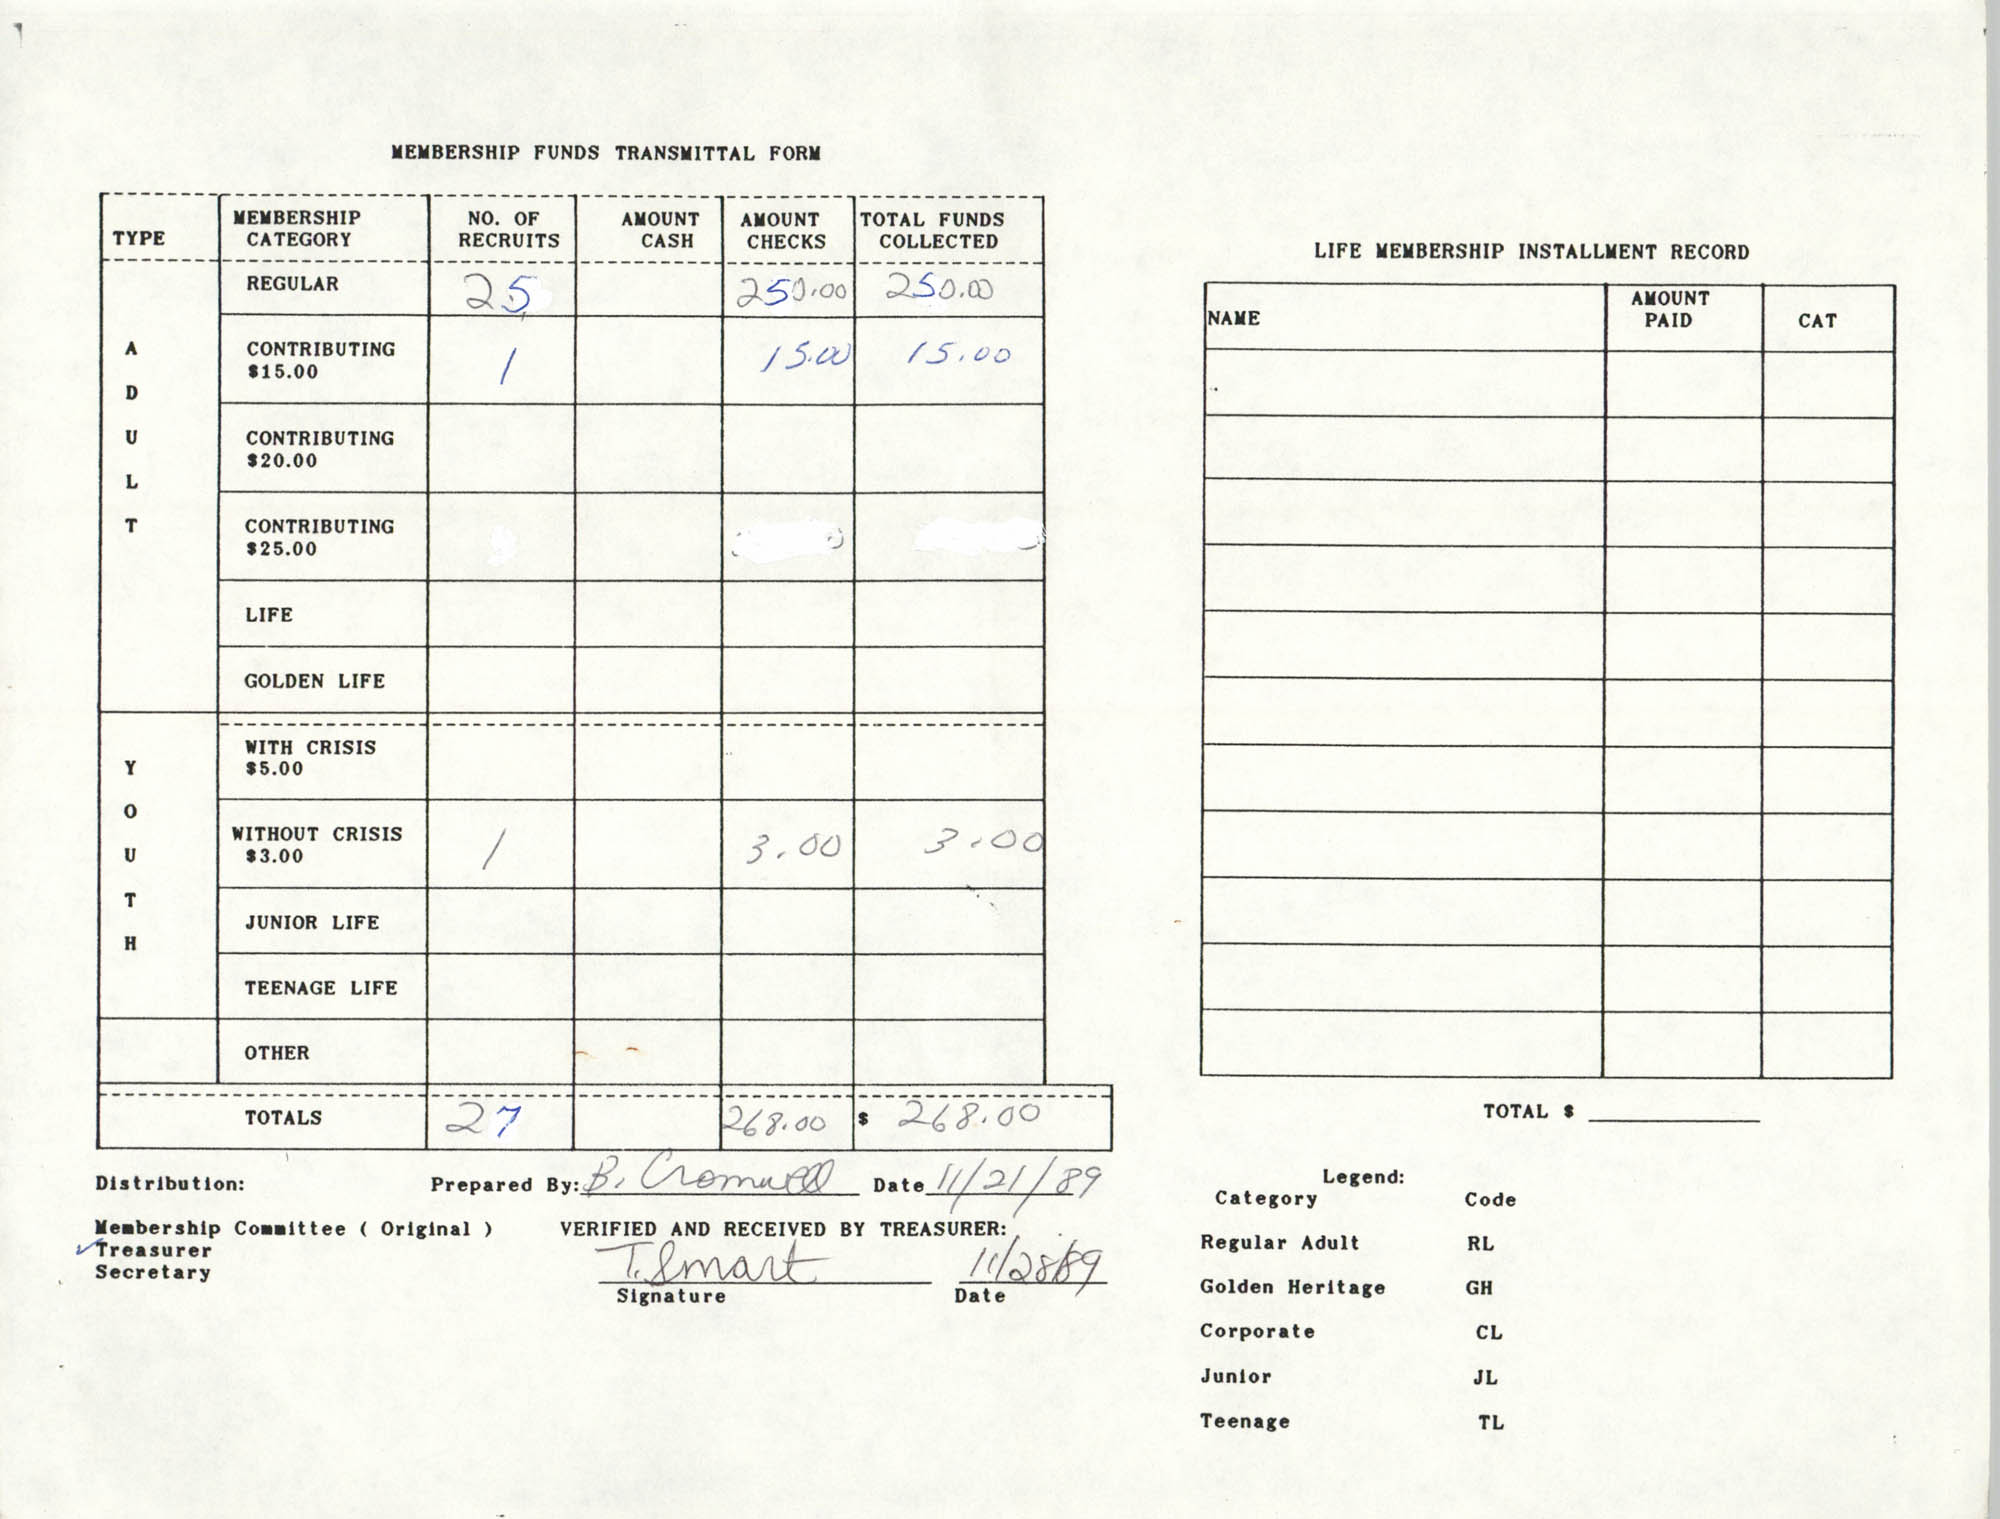 Charleston Branch of the NAACP Funds Transmittal Forms, November 1989, Page 5